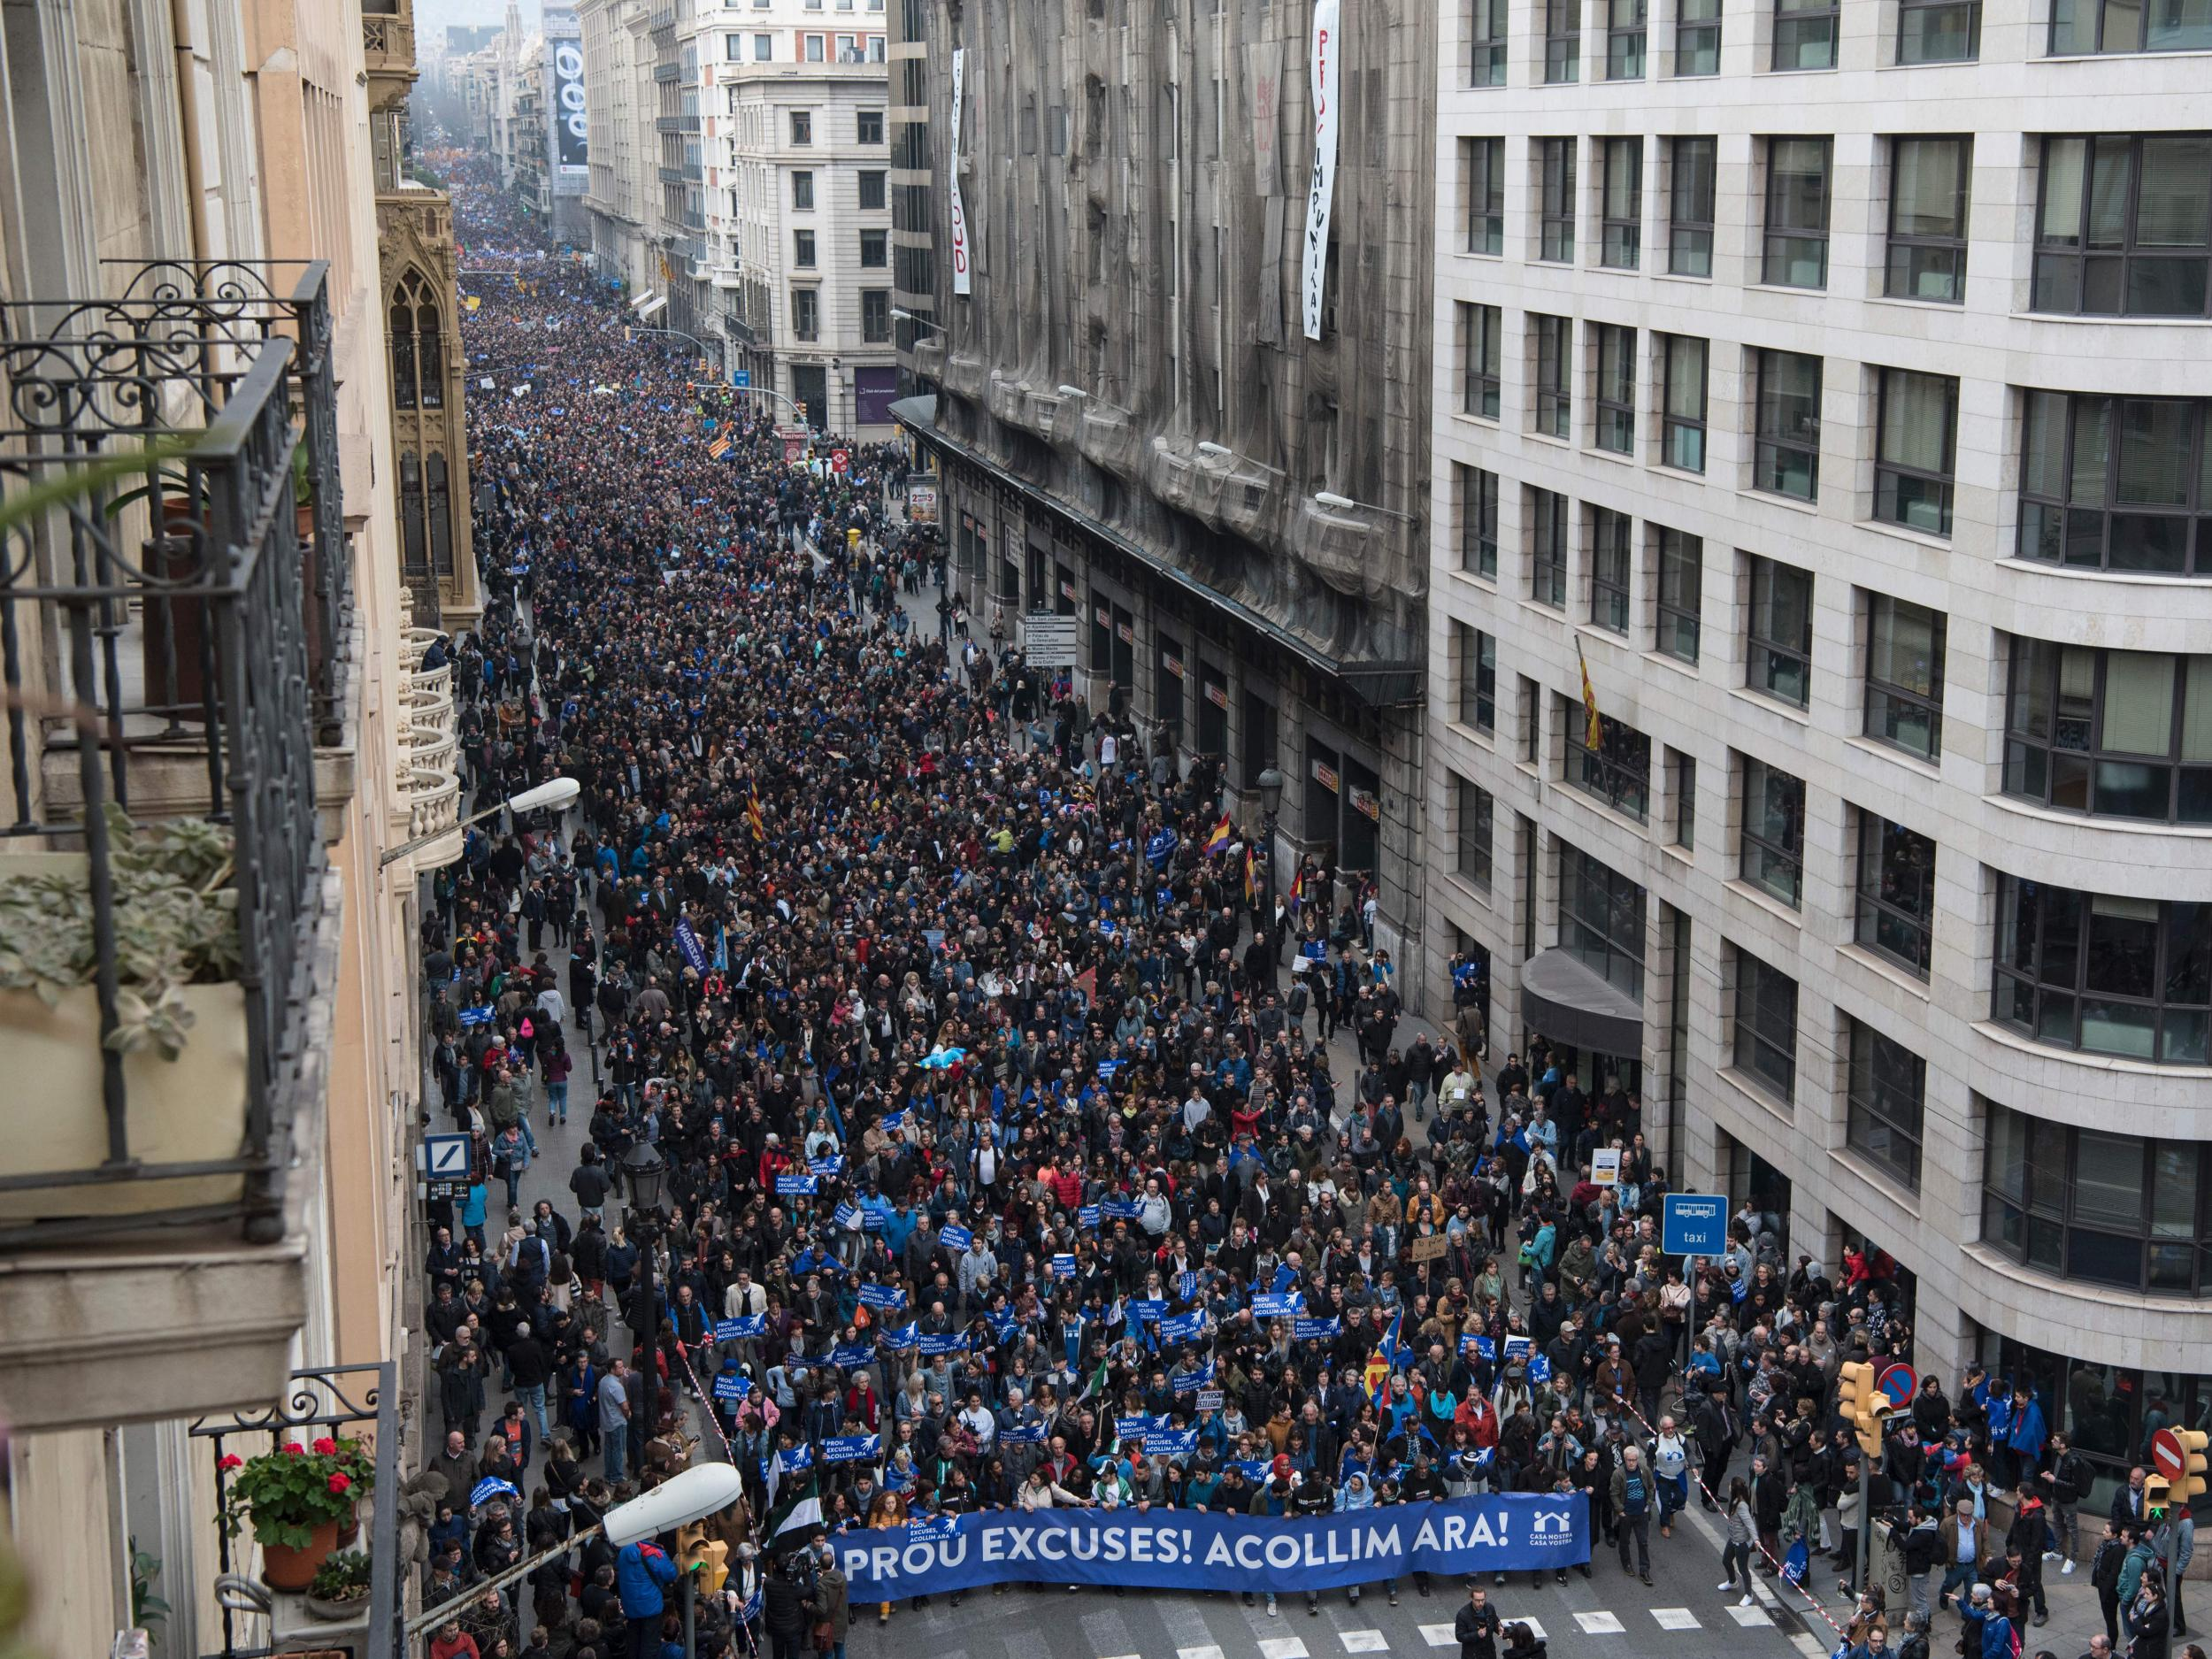 More than 160,000 march in Barcelona to demand Spain takes in more refugees | The Independentindependent_brand_ident_LOGOUntitled